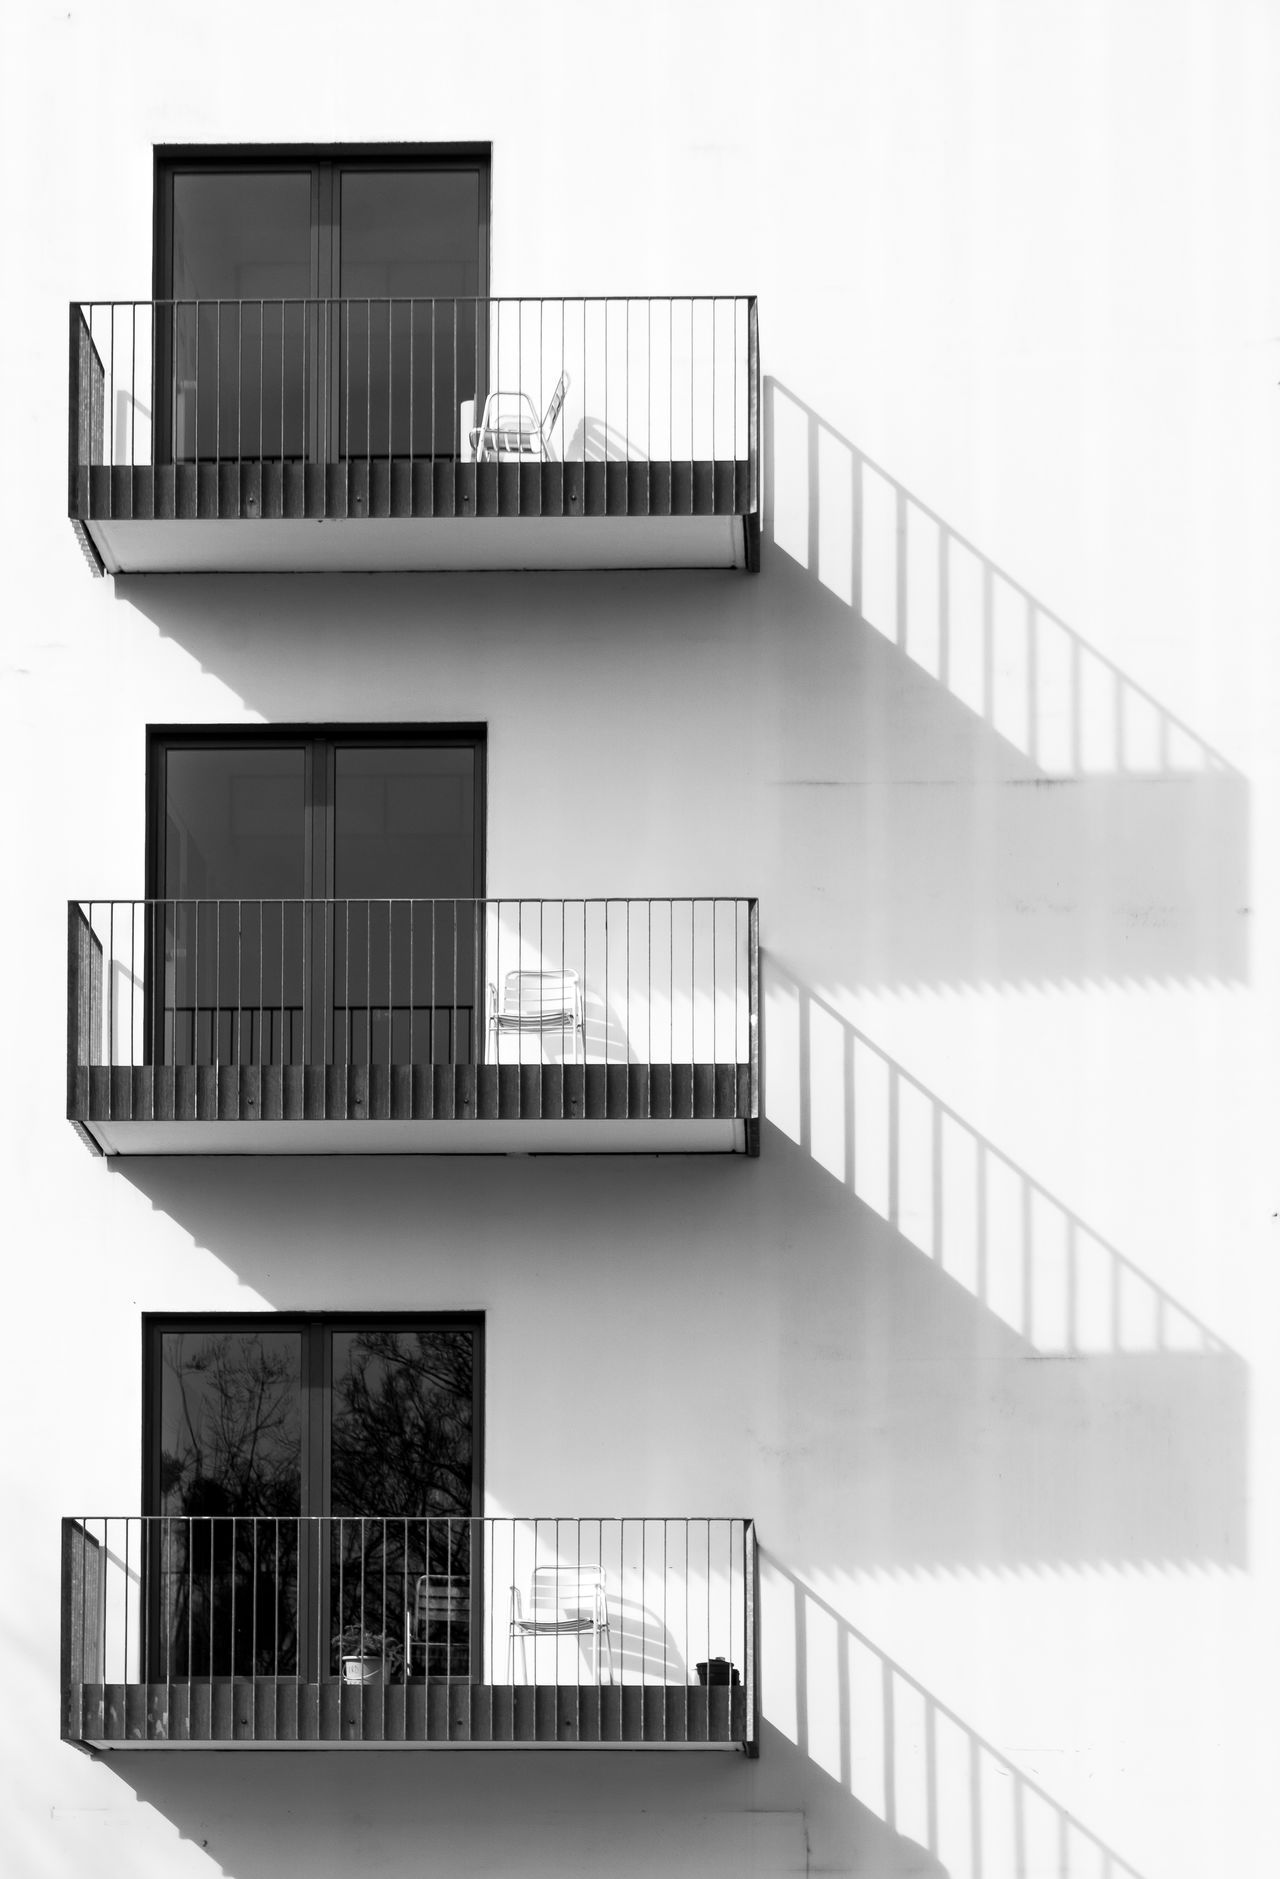 Architecture Architecture_collection Balcony Berliner Ansichten Black And White Blackandwhite Building Exterior Built Structure City Day EyeEm Best Edits EyeEmBestPics Industry Light And Shadow Minimalism Minimalistic Modern No People Outdoors Sky Urban Geometry